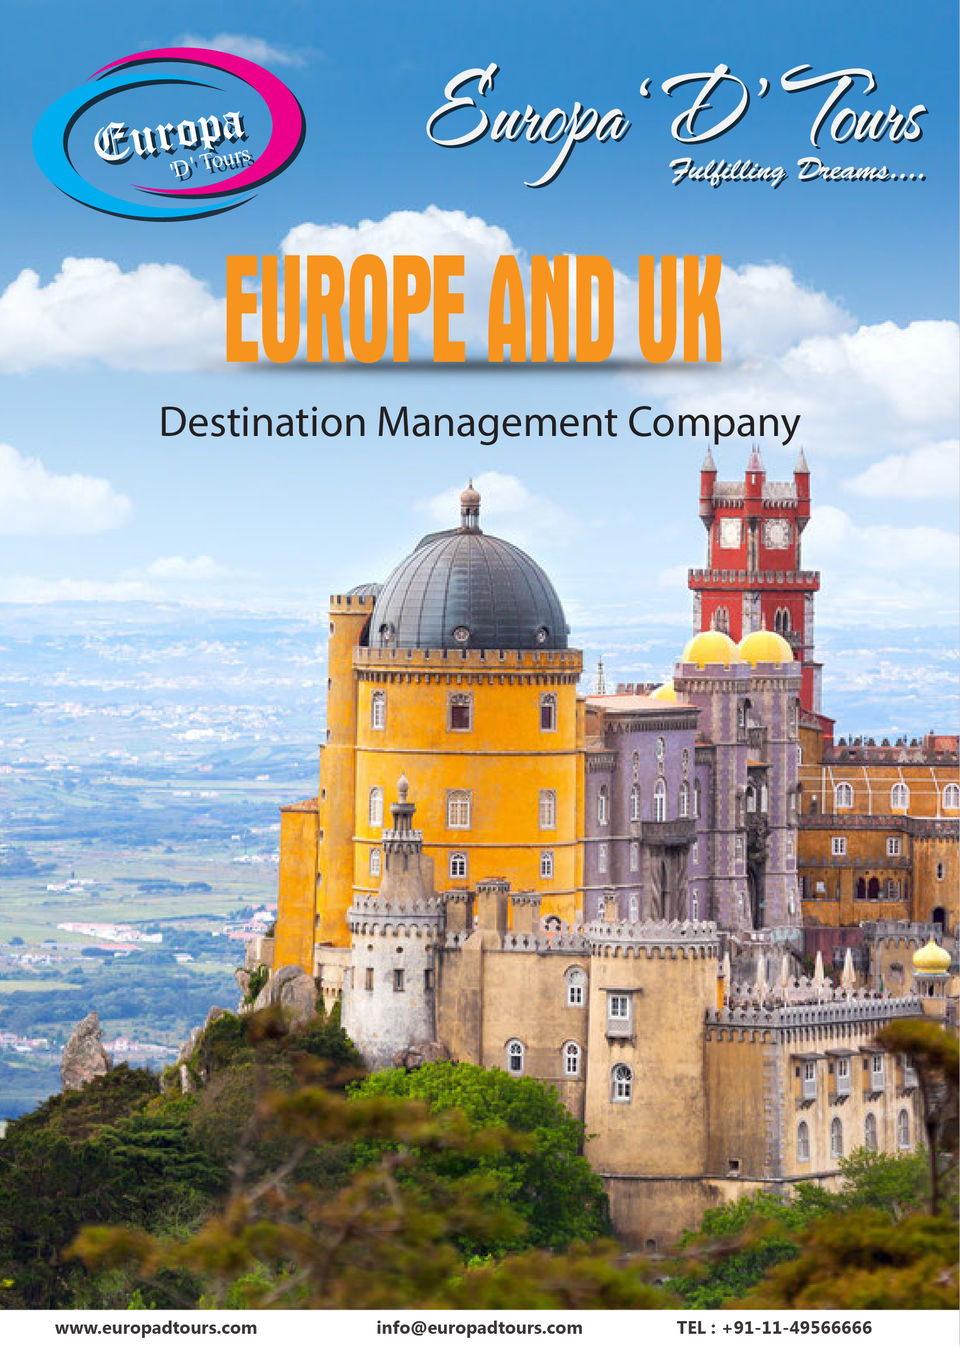 Europe Tour Packages Holidays By Europa D Tours Tripoto - Europe tours packages